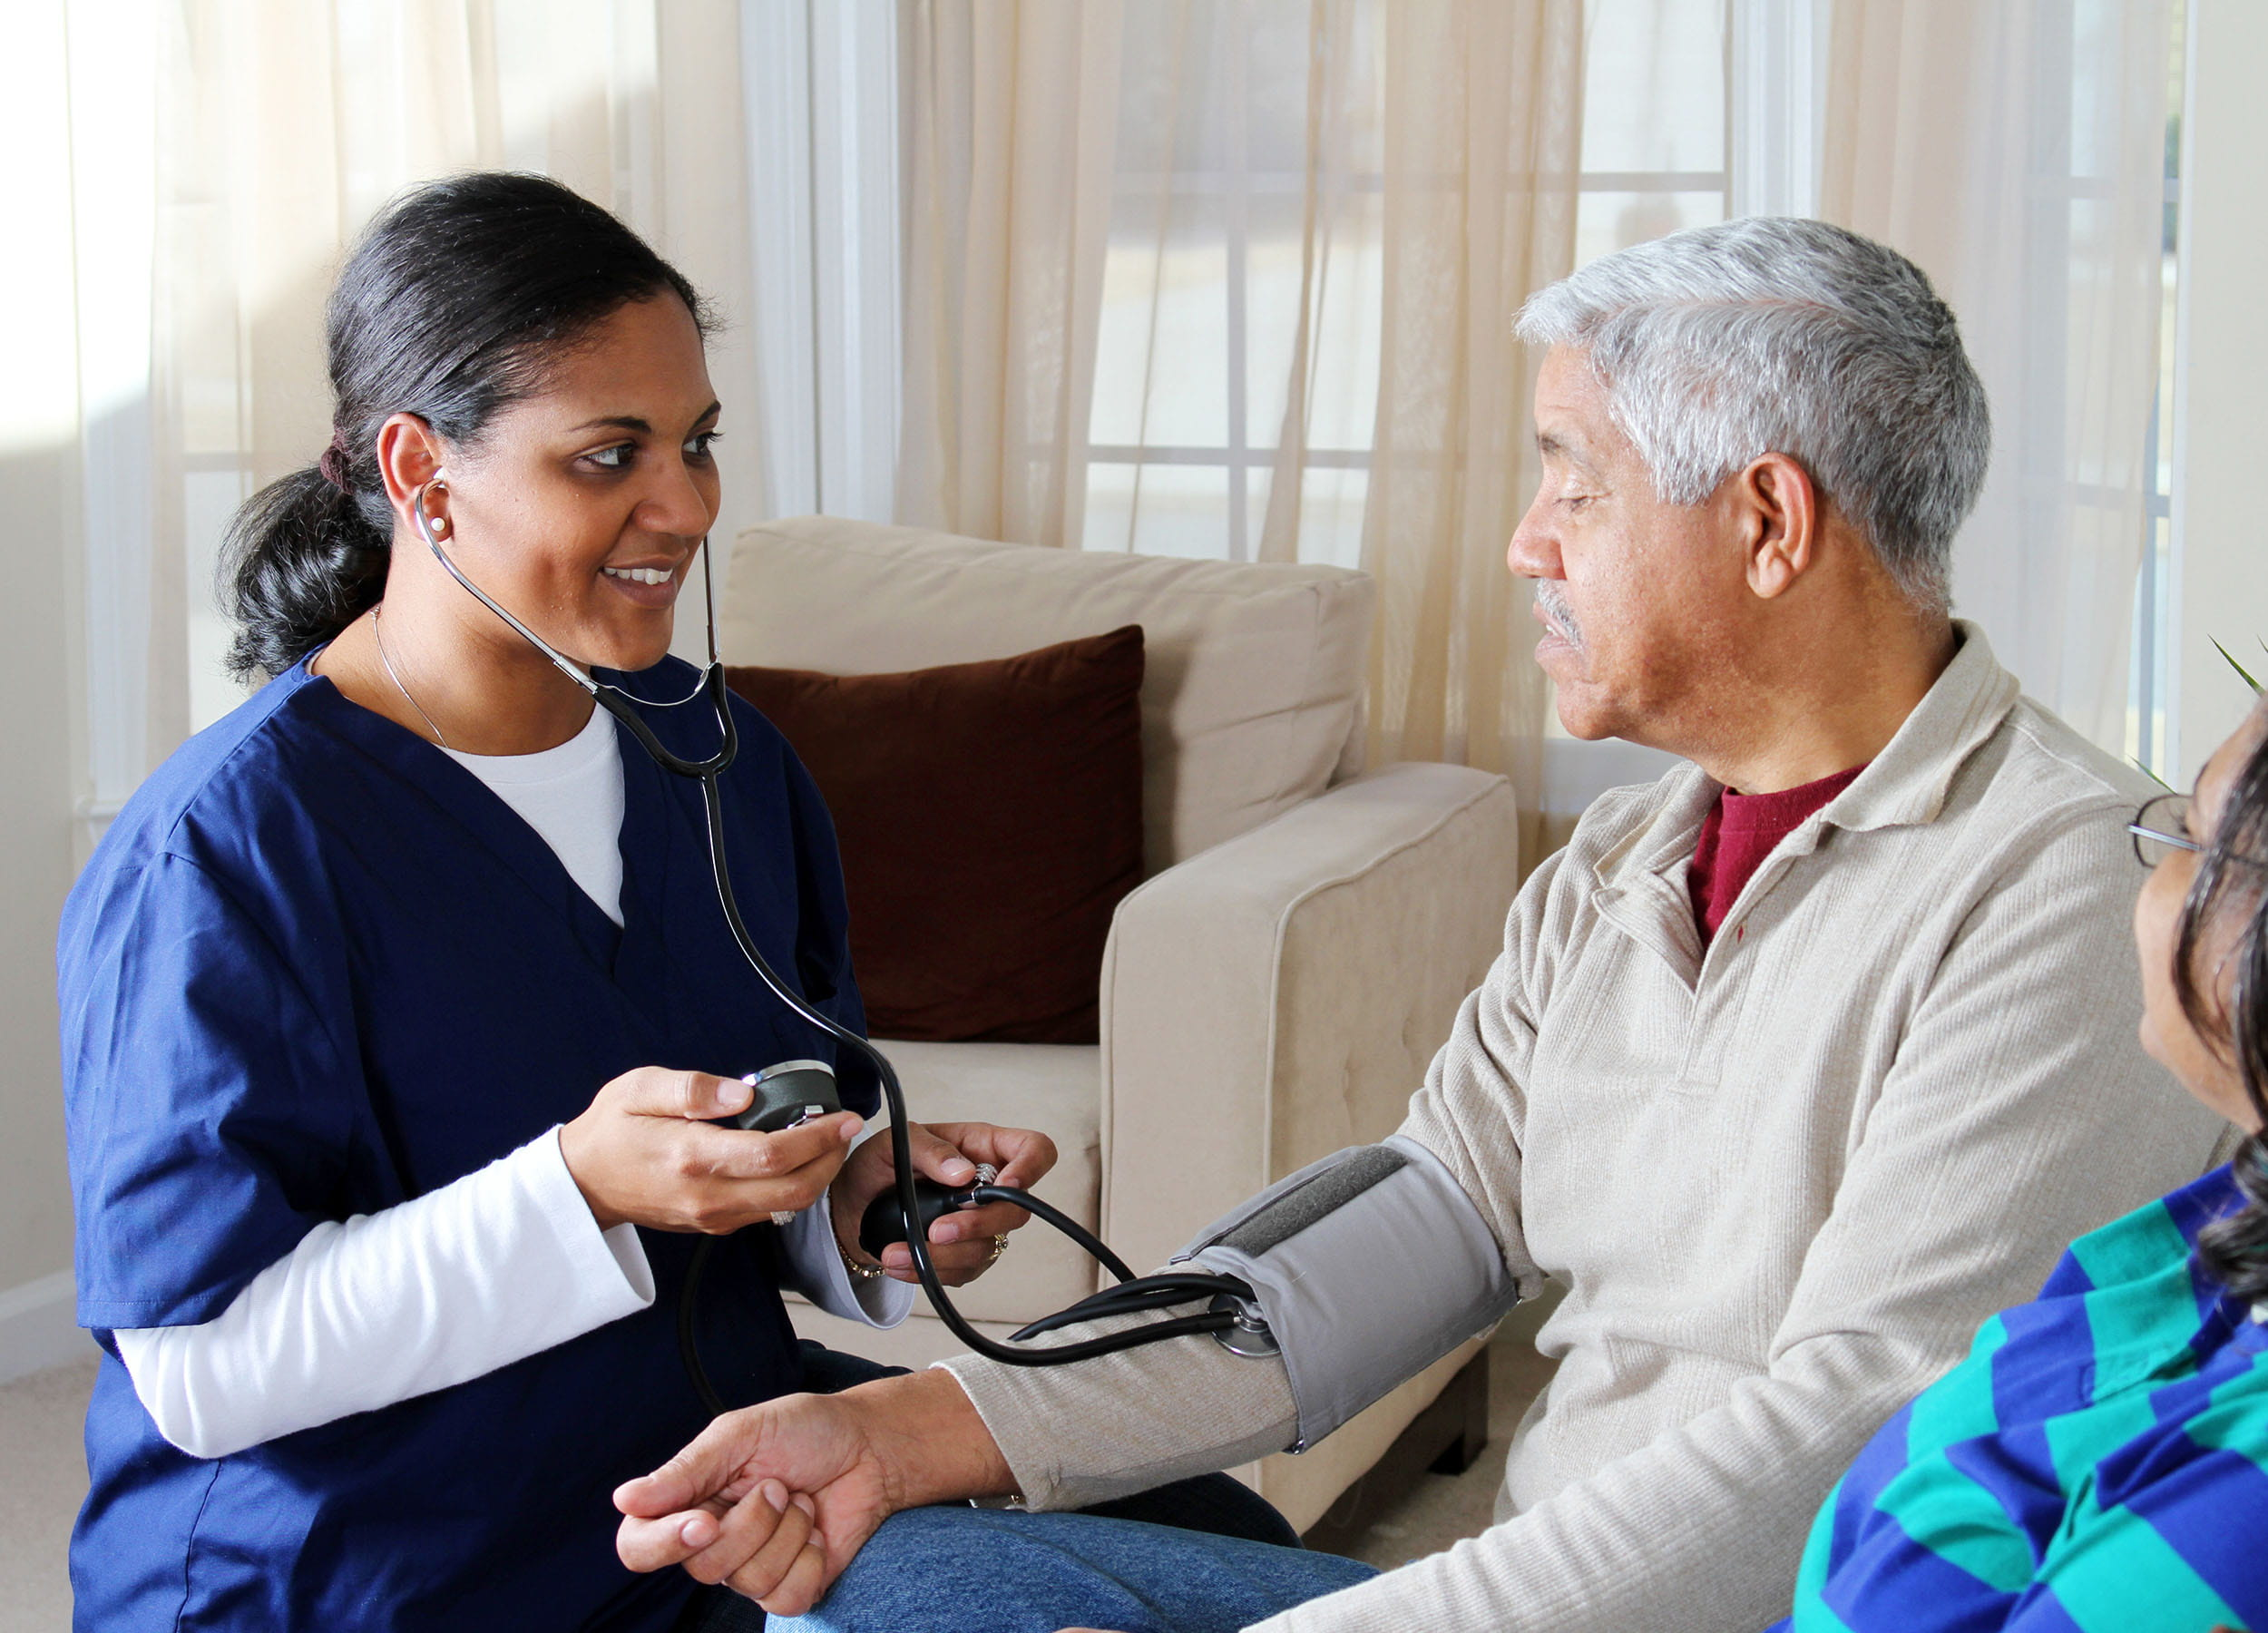 Personal Support worker meeting with a client